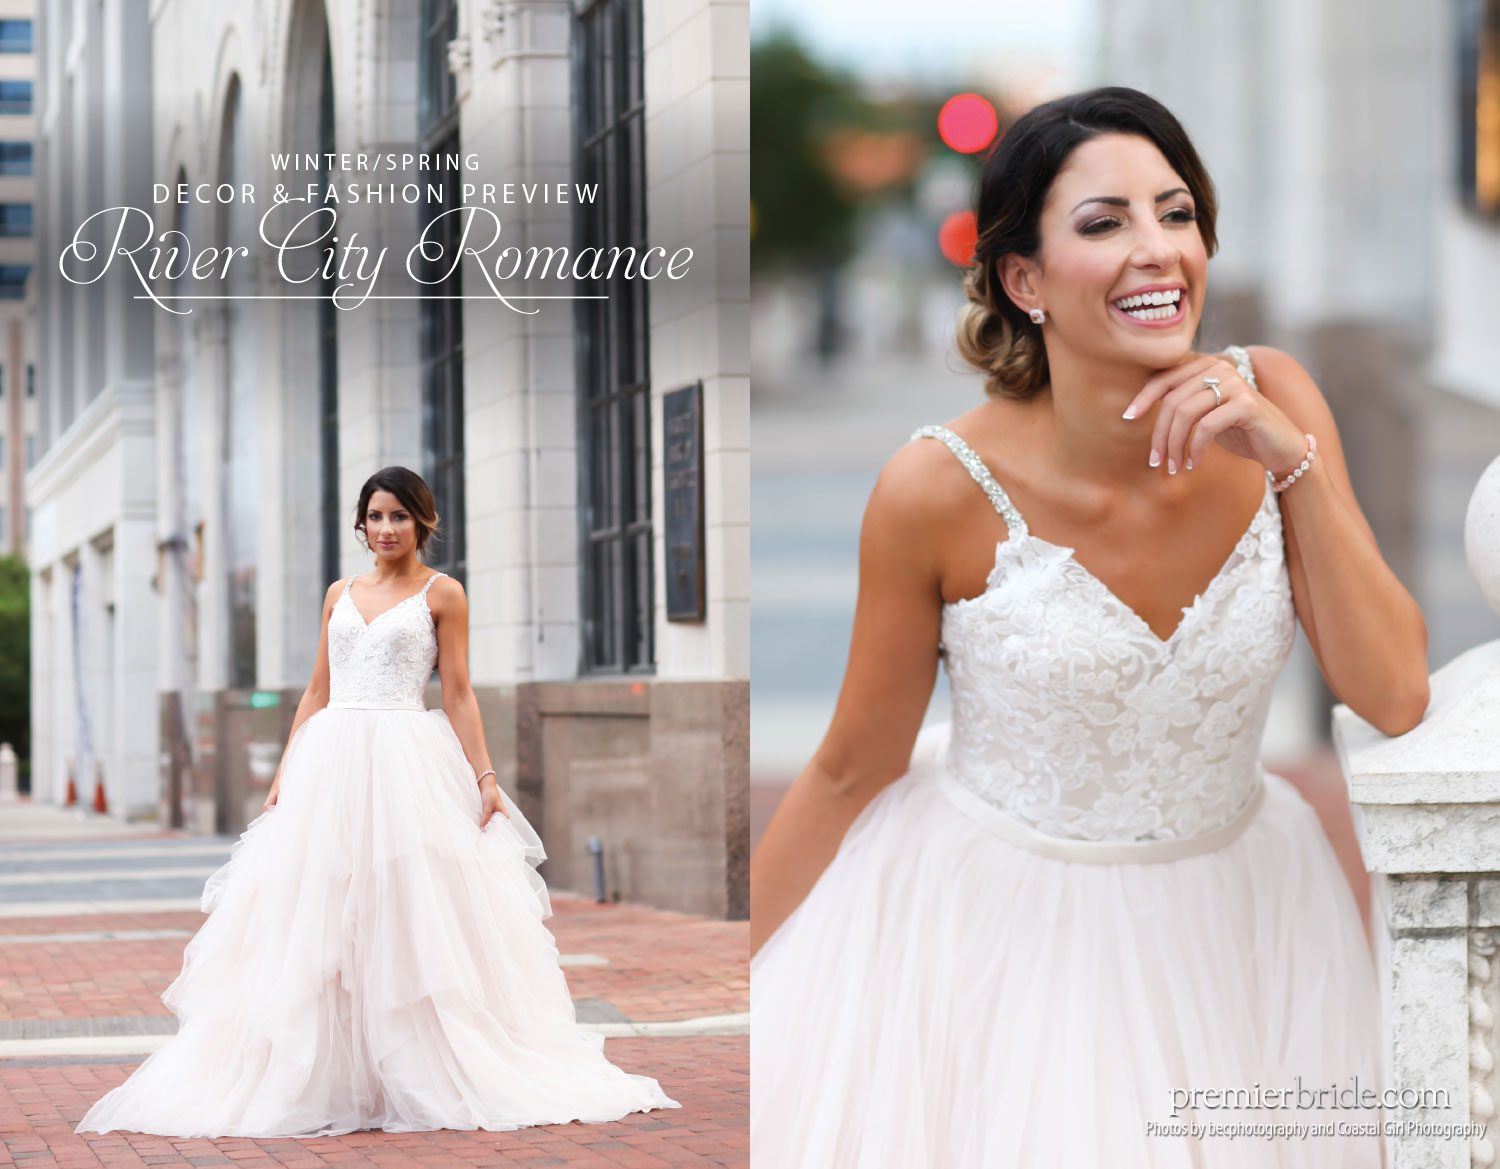 Michaels Formalwear and Bridal, photos by becphotography